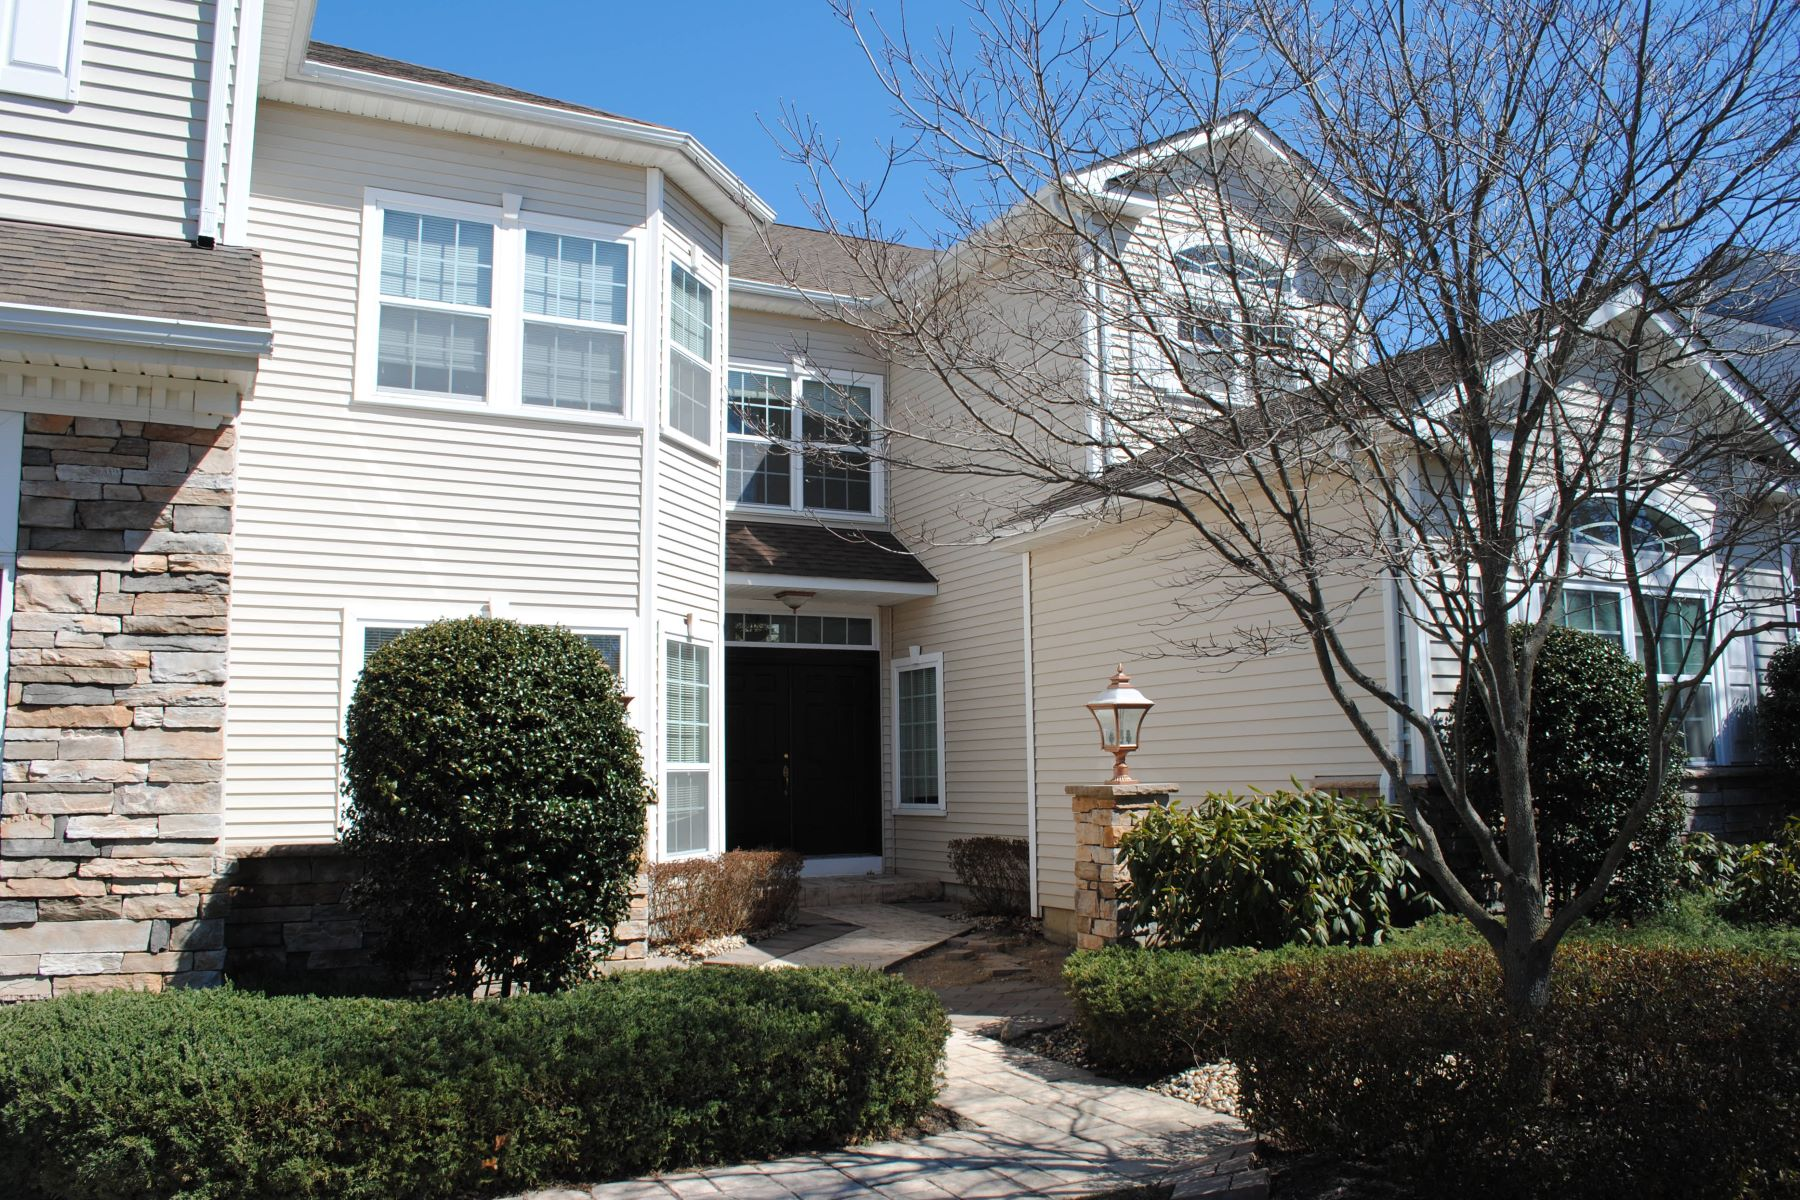 Condominium for Sale at Condo in desirable gated community 60 Hamlet Dr Mount Sinai, New York, 11766 United States